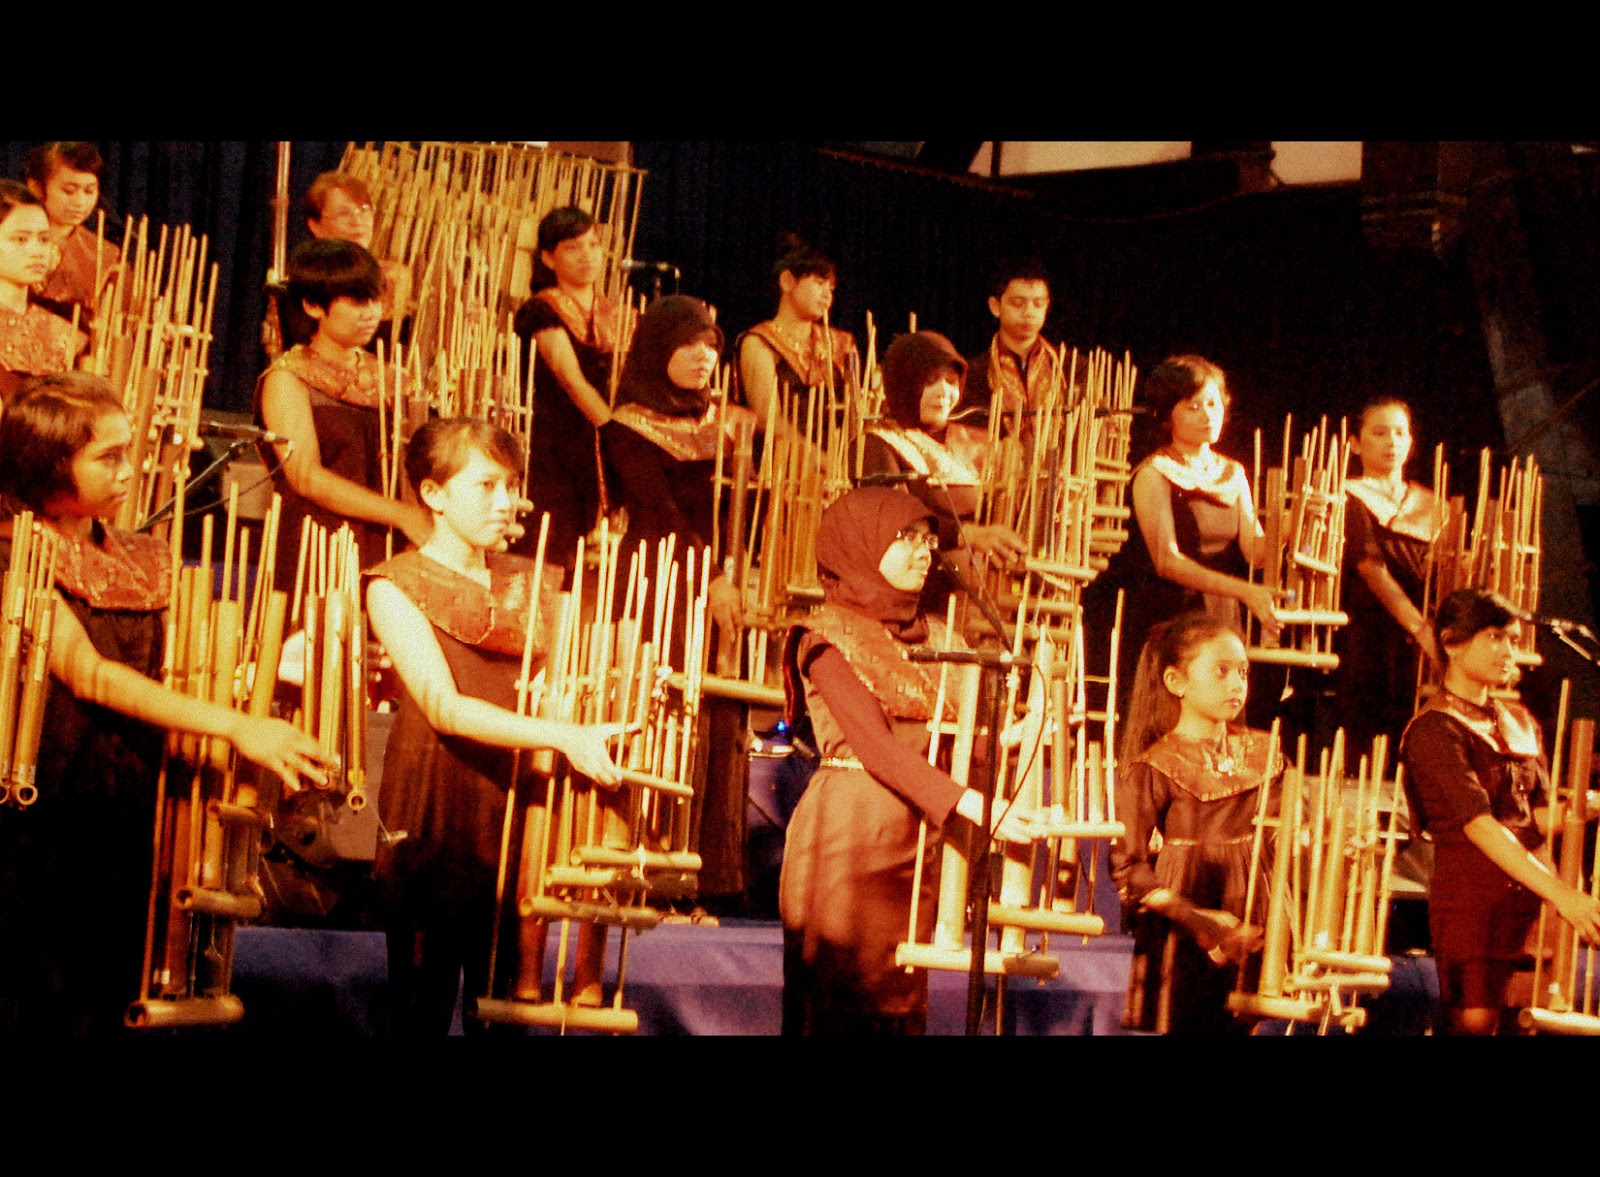 Angklung is a traditional musical instrument originated from West Java